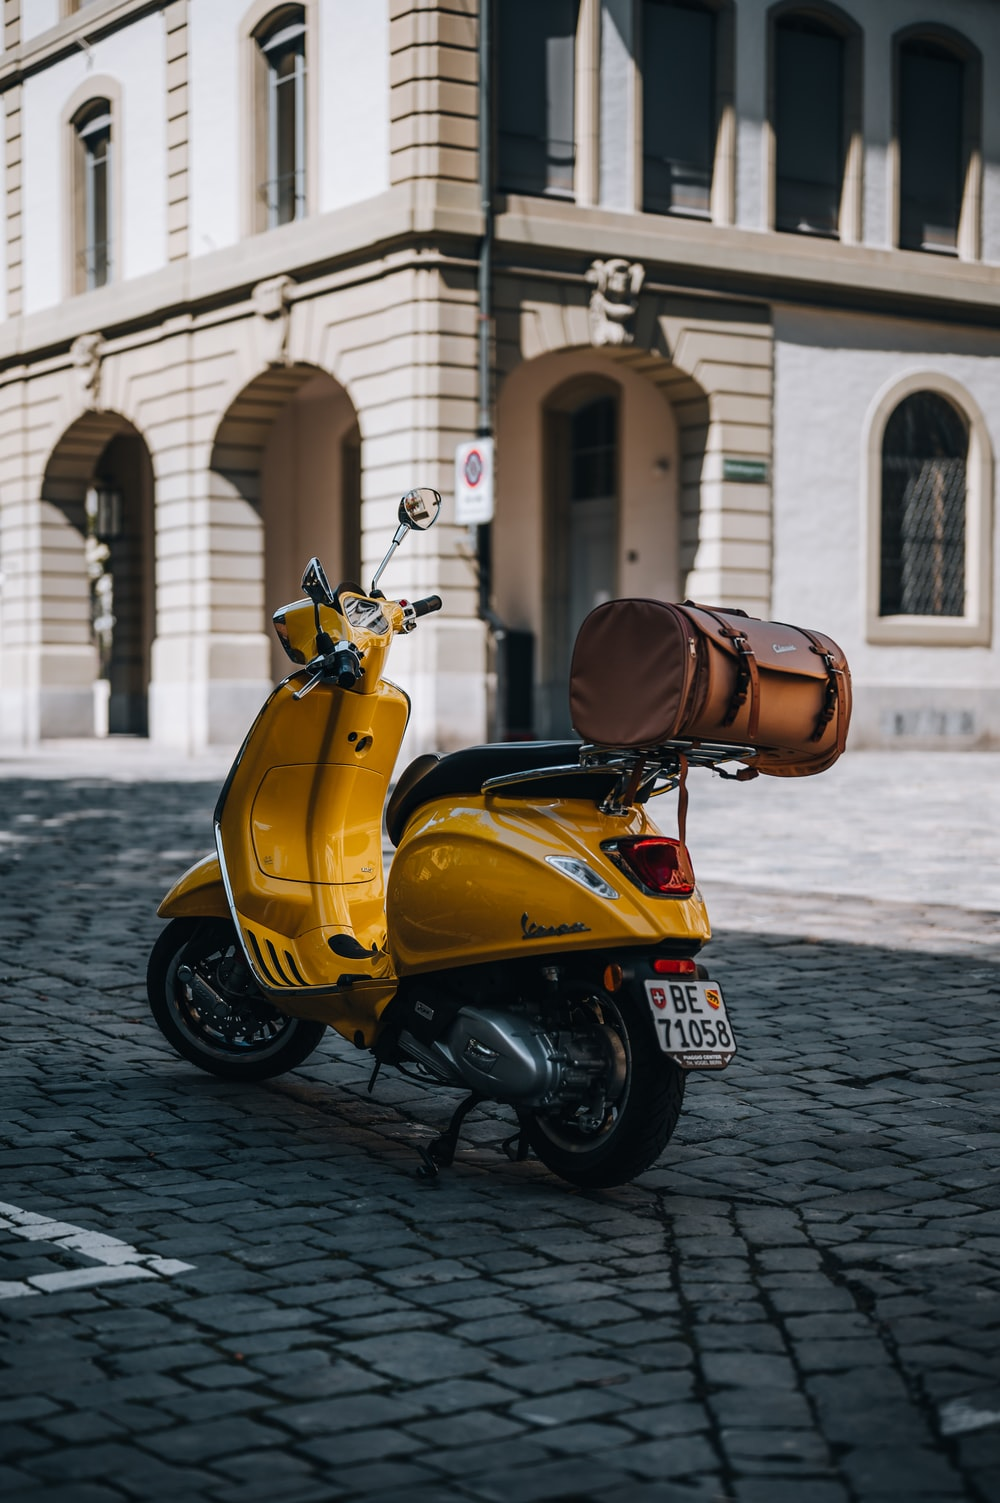 yellow and black motor scooter parked on gray concrete pavement during daytime